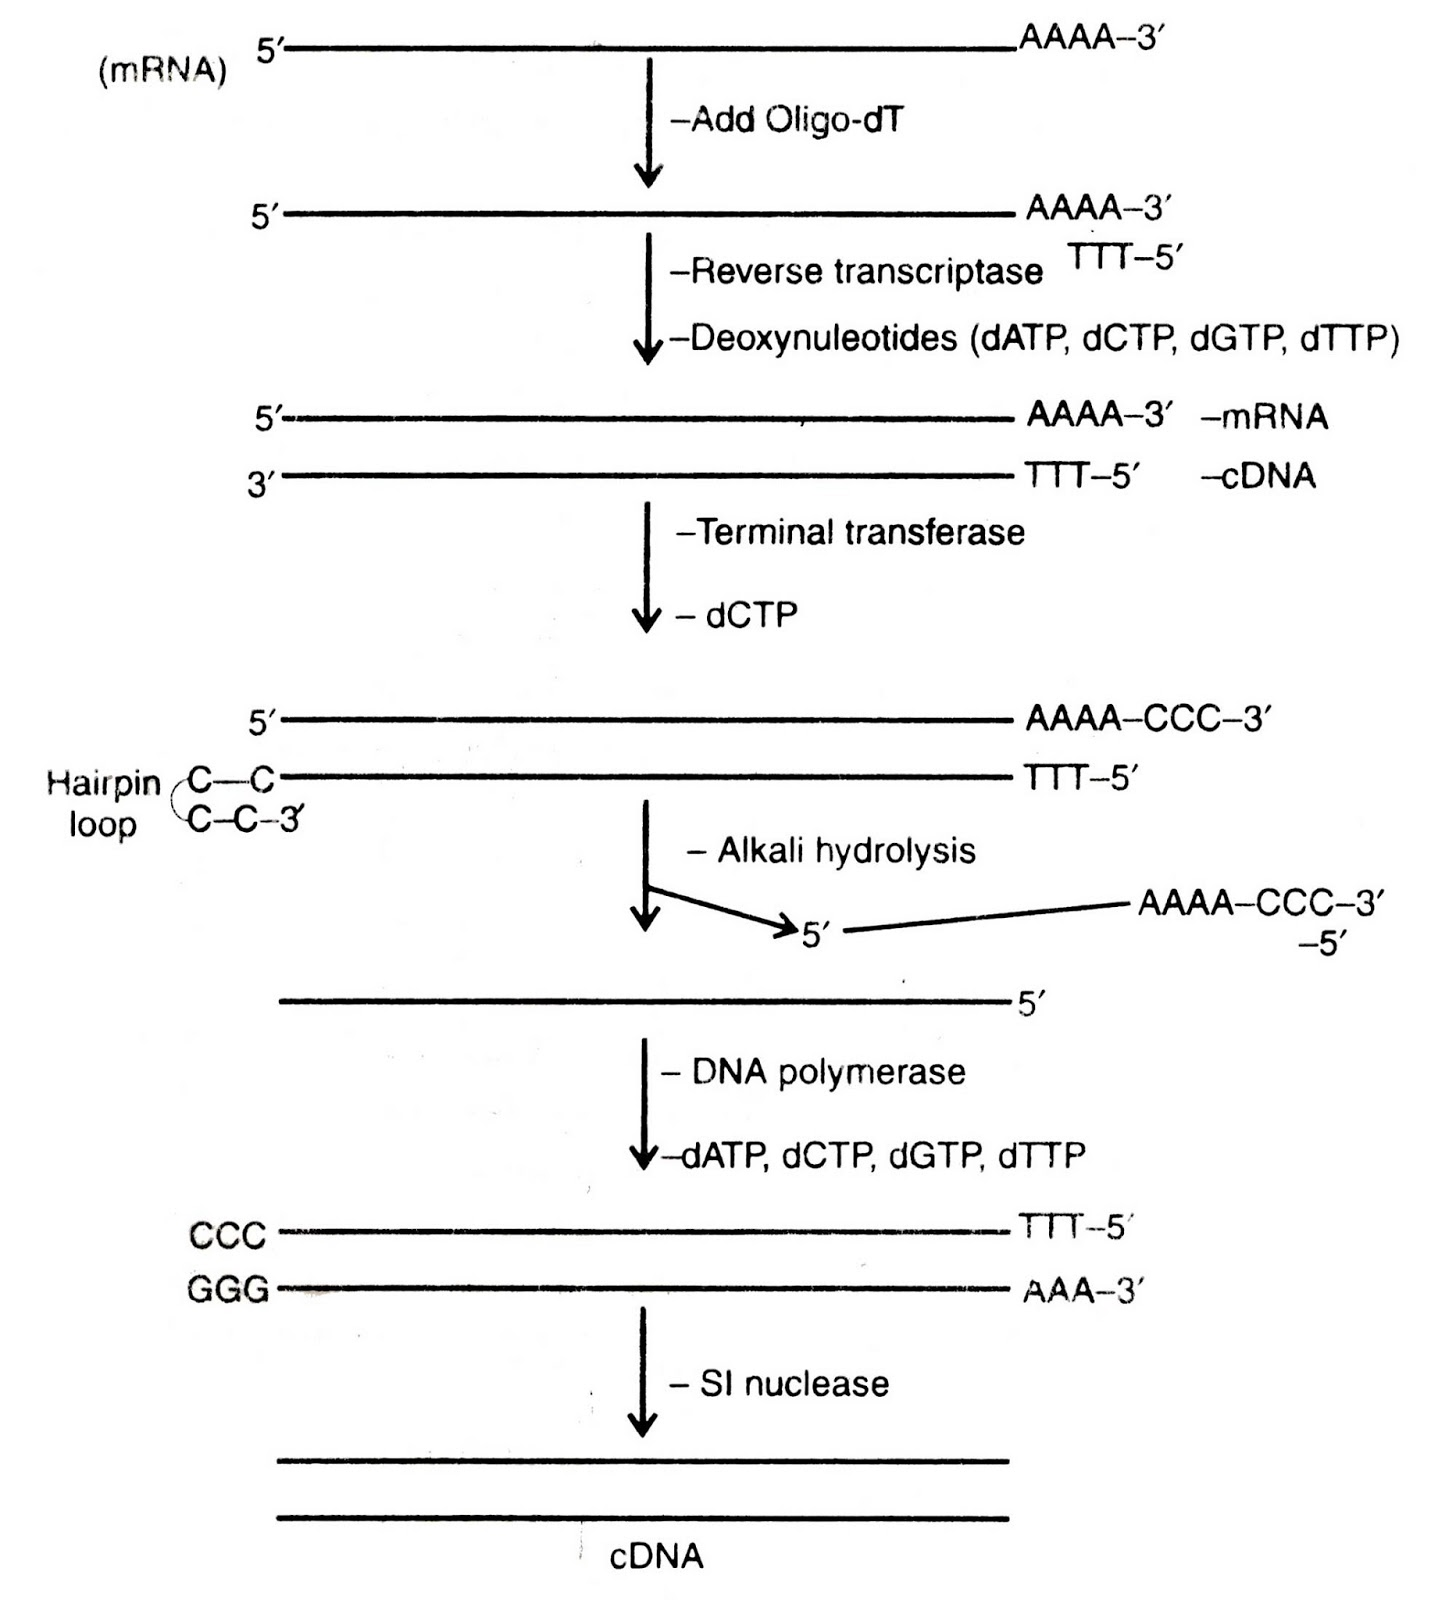 cdna sysnthesis Cdna synthesis & rt-pcr | neb cdna in general is the dna molecule which corresponds to sysnthesis of the corrseponding second strand of a dna.